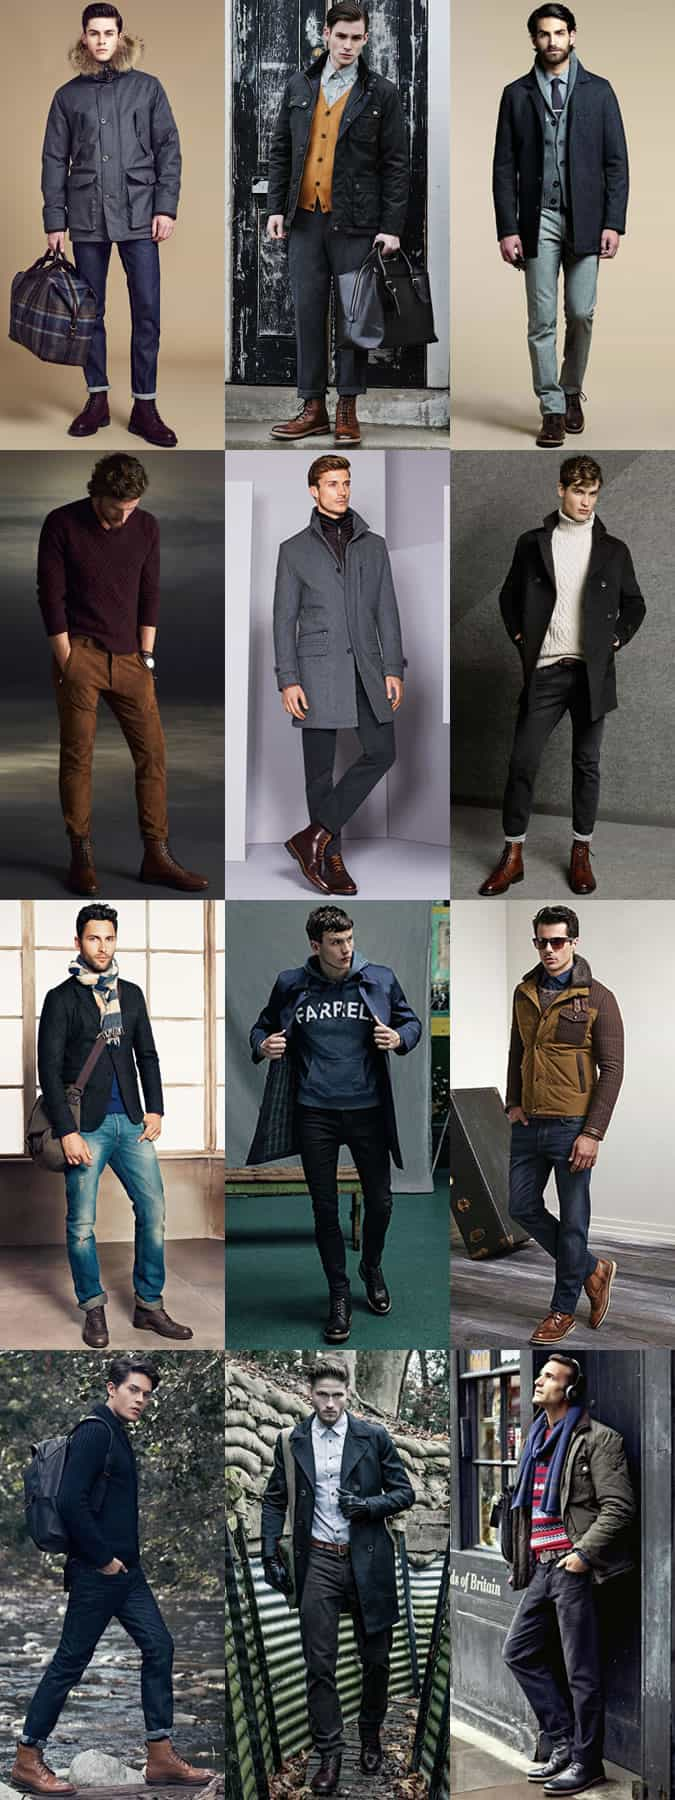 Men's Leather Brogue Boots Outfit Inspiration Lookbook